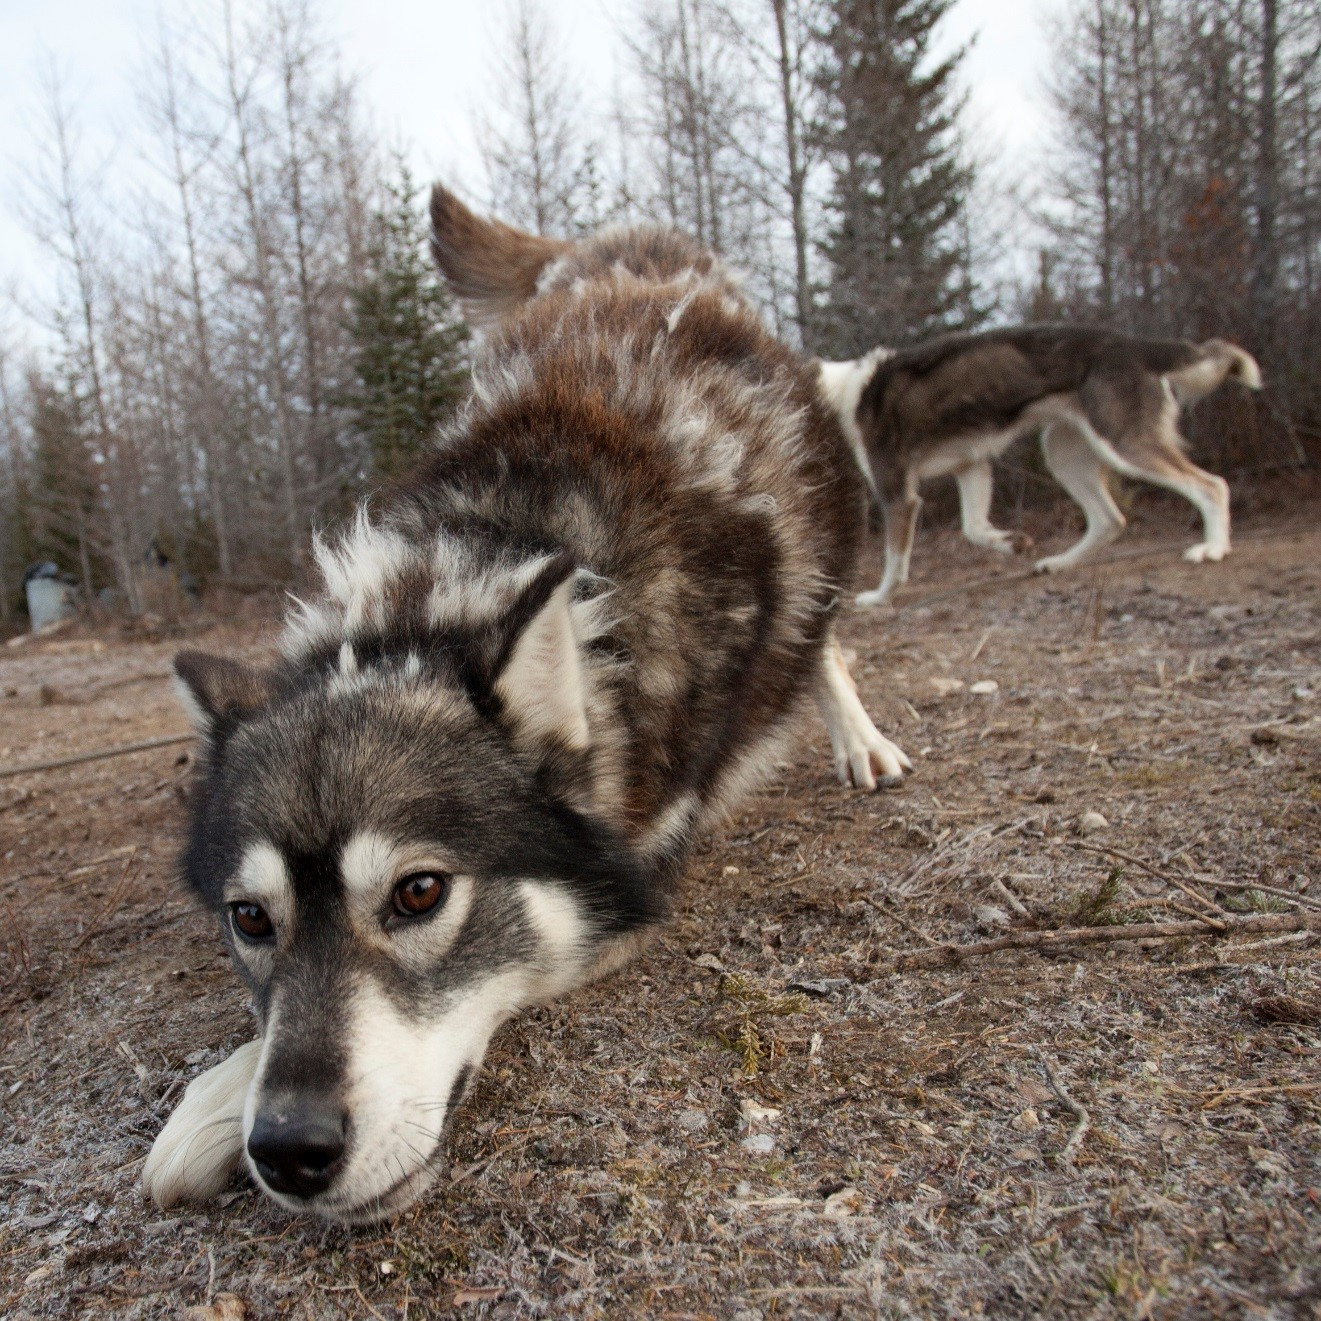 an ultra wide angle photo of a sled dog in the arctic